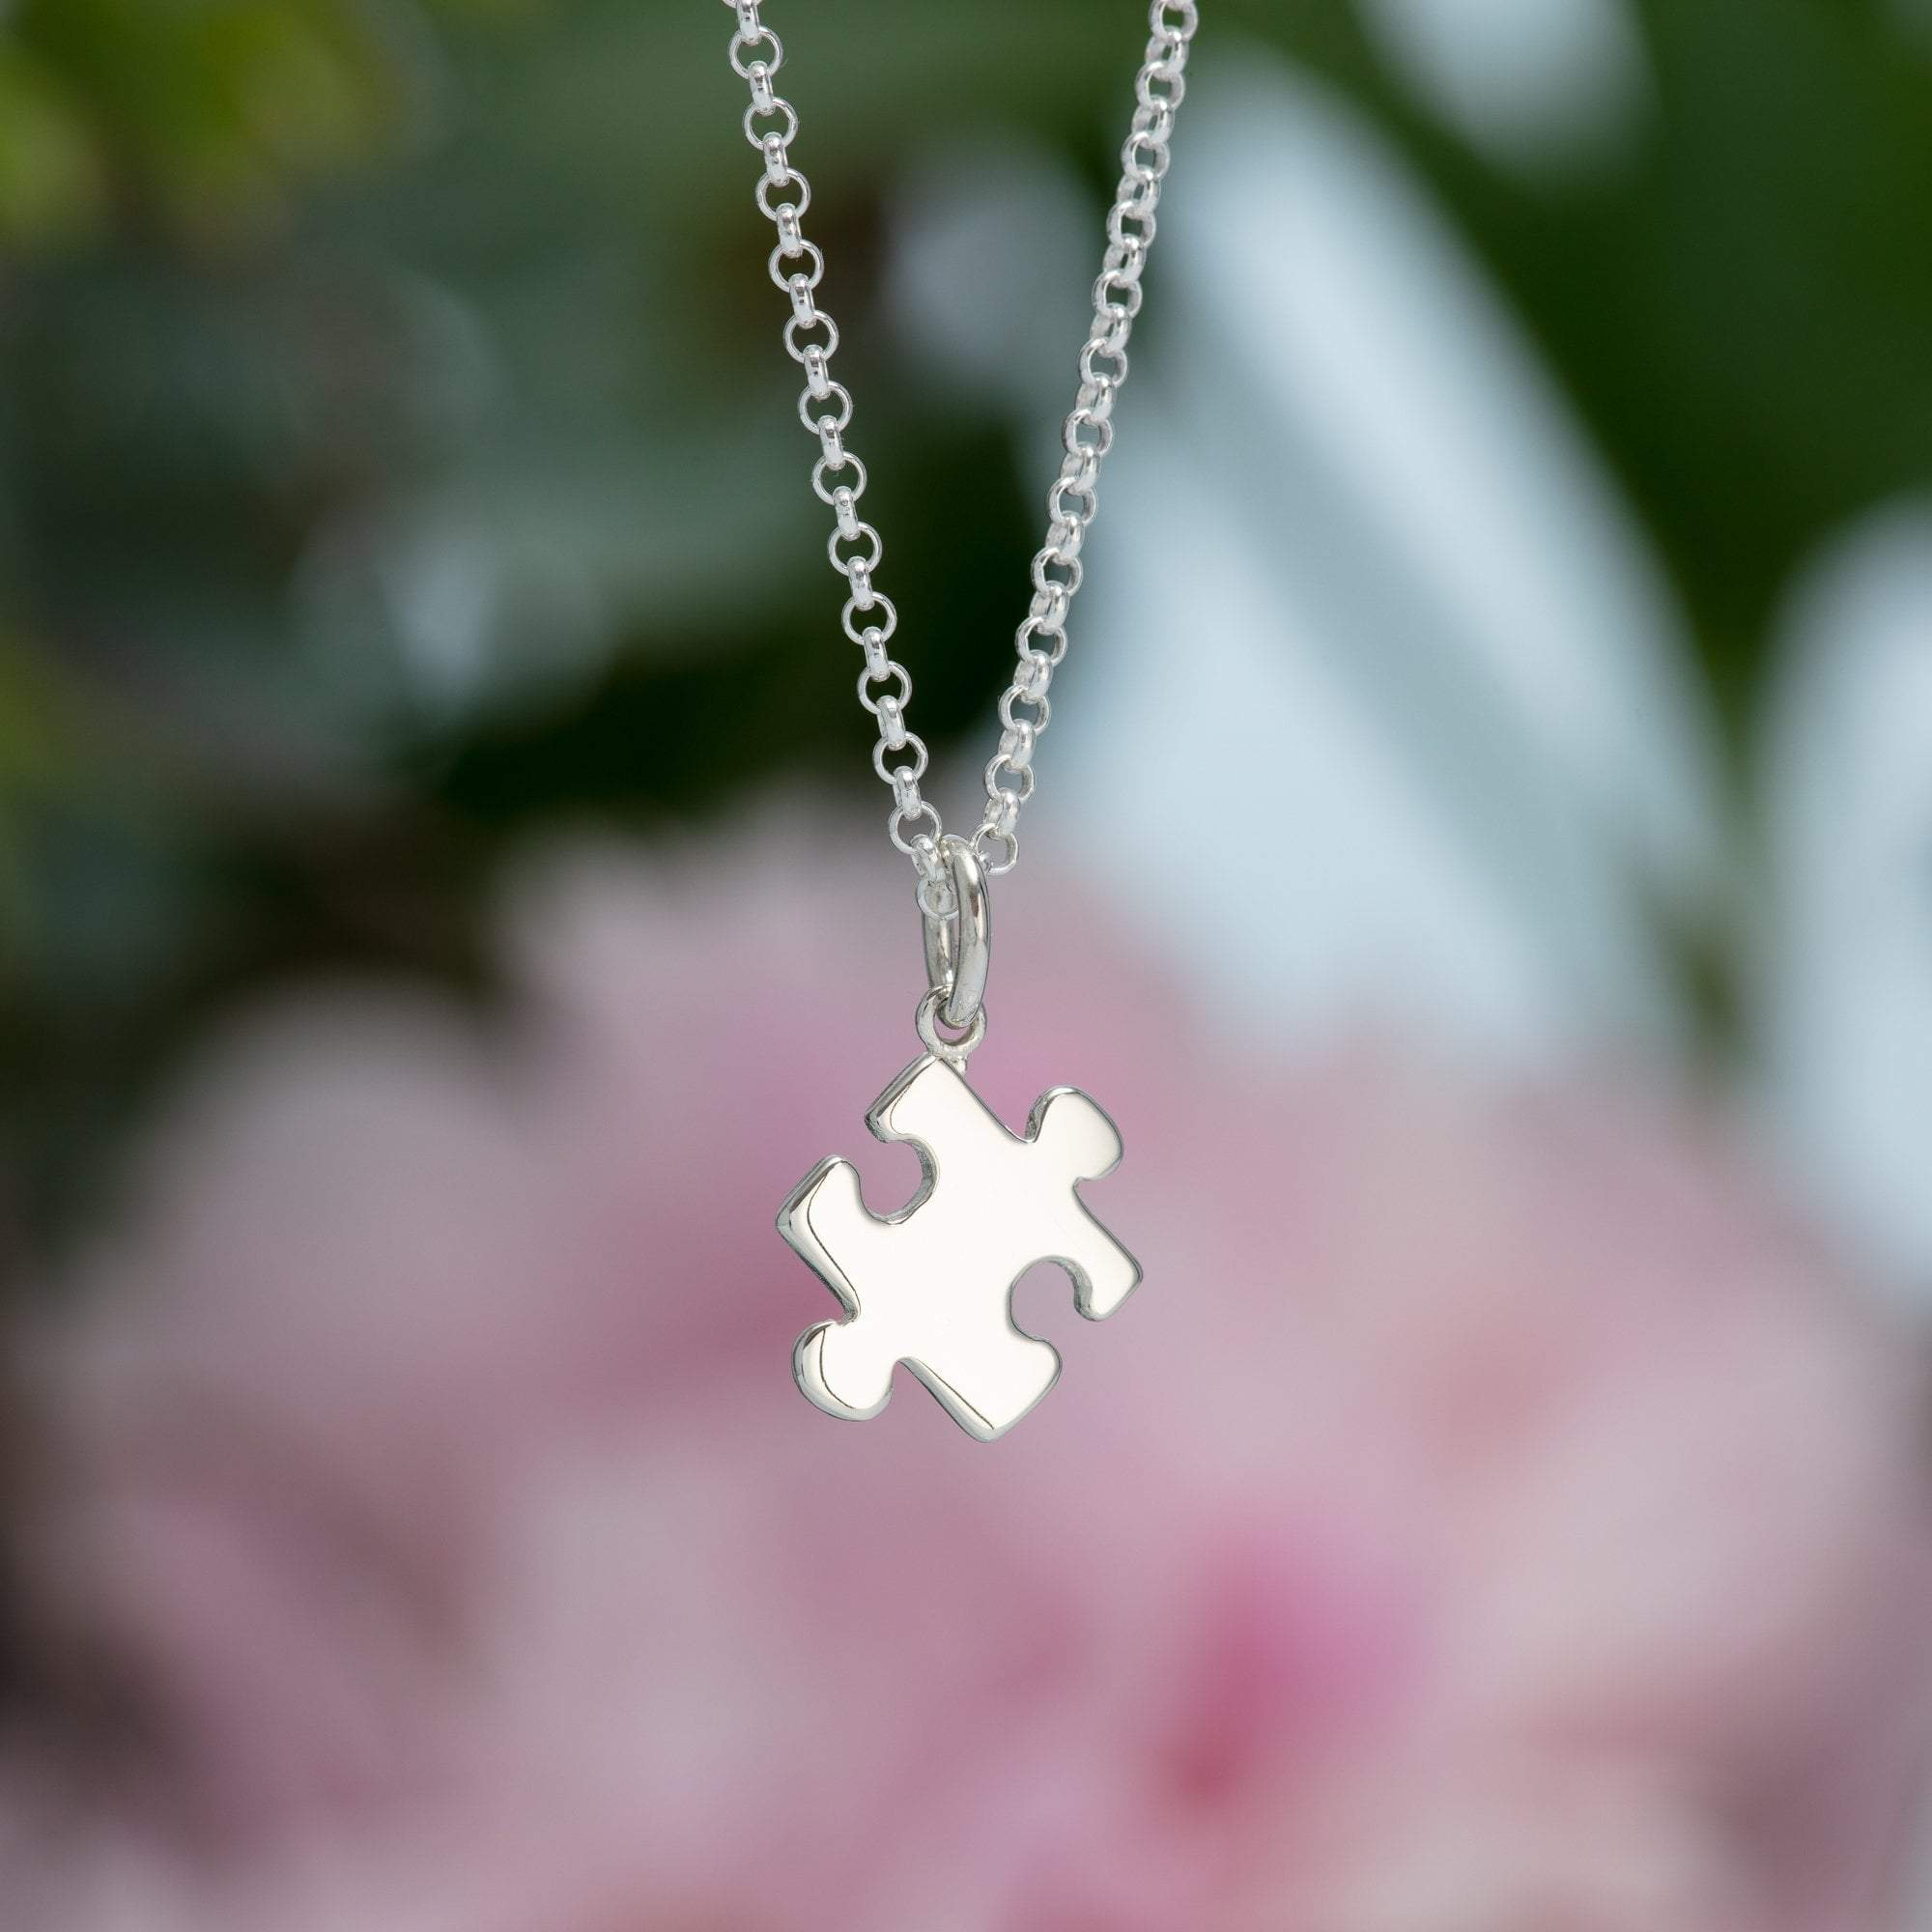 Silver Jigsaw Necklace with 'Friendship' Message - Lily Charmed